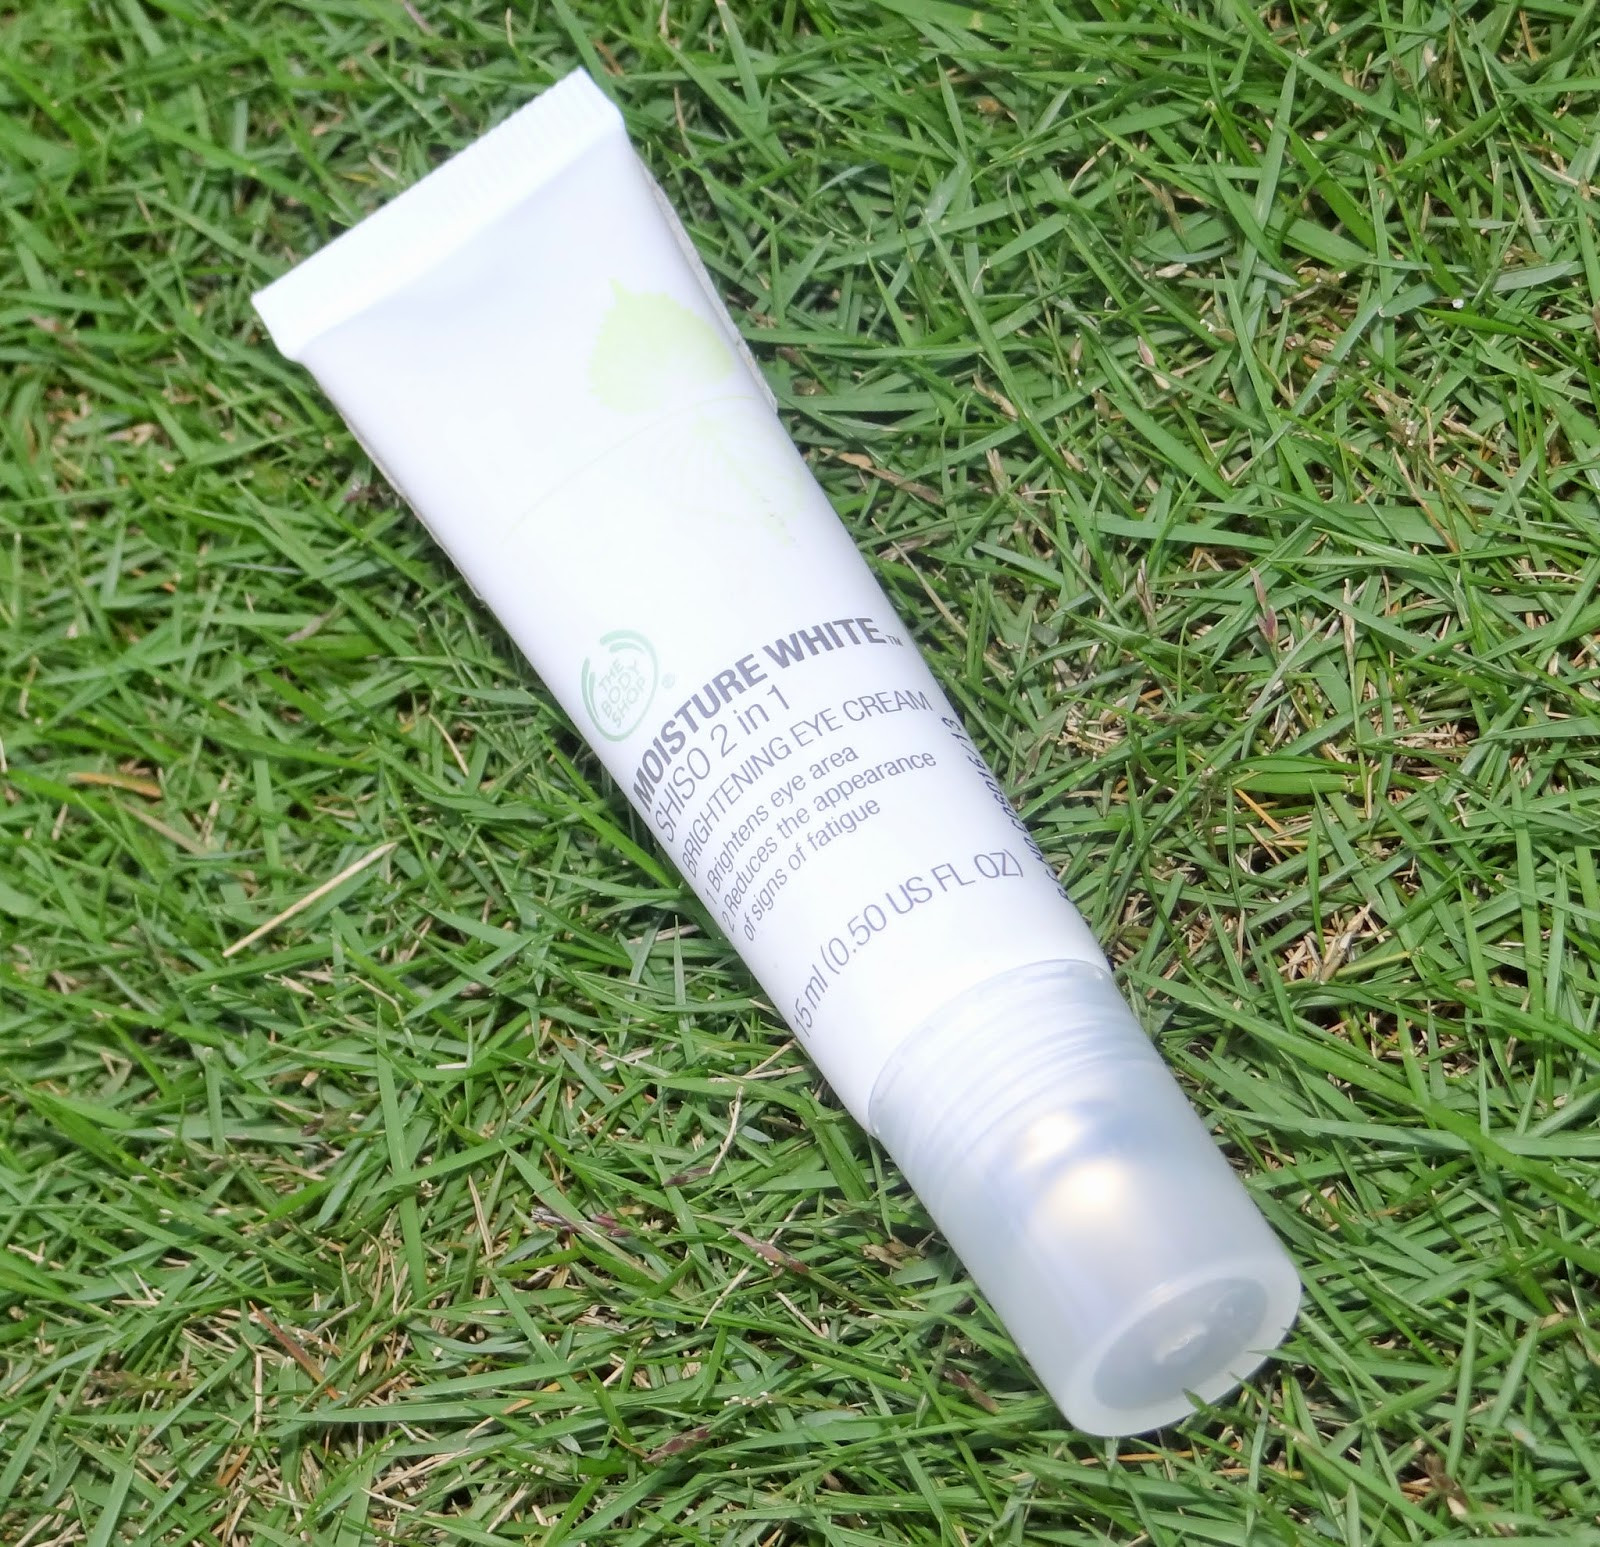 The Body Shop Moisture White Shiso 2 in 1 Brightening Eye Cream - Review